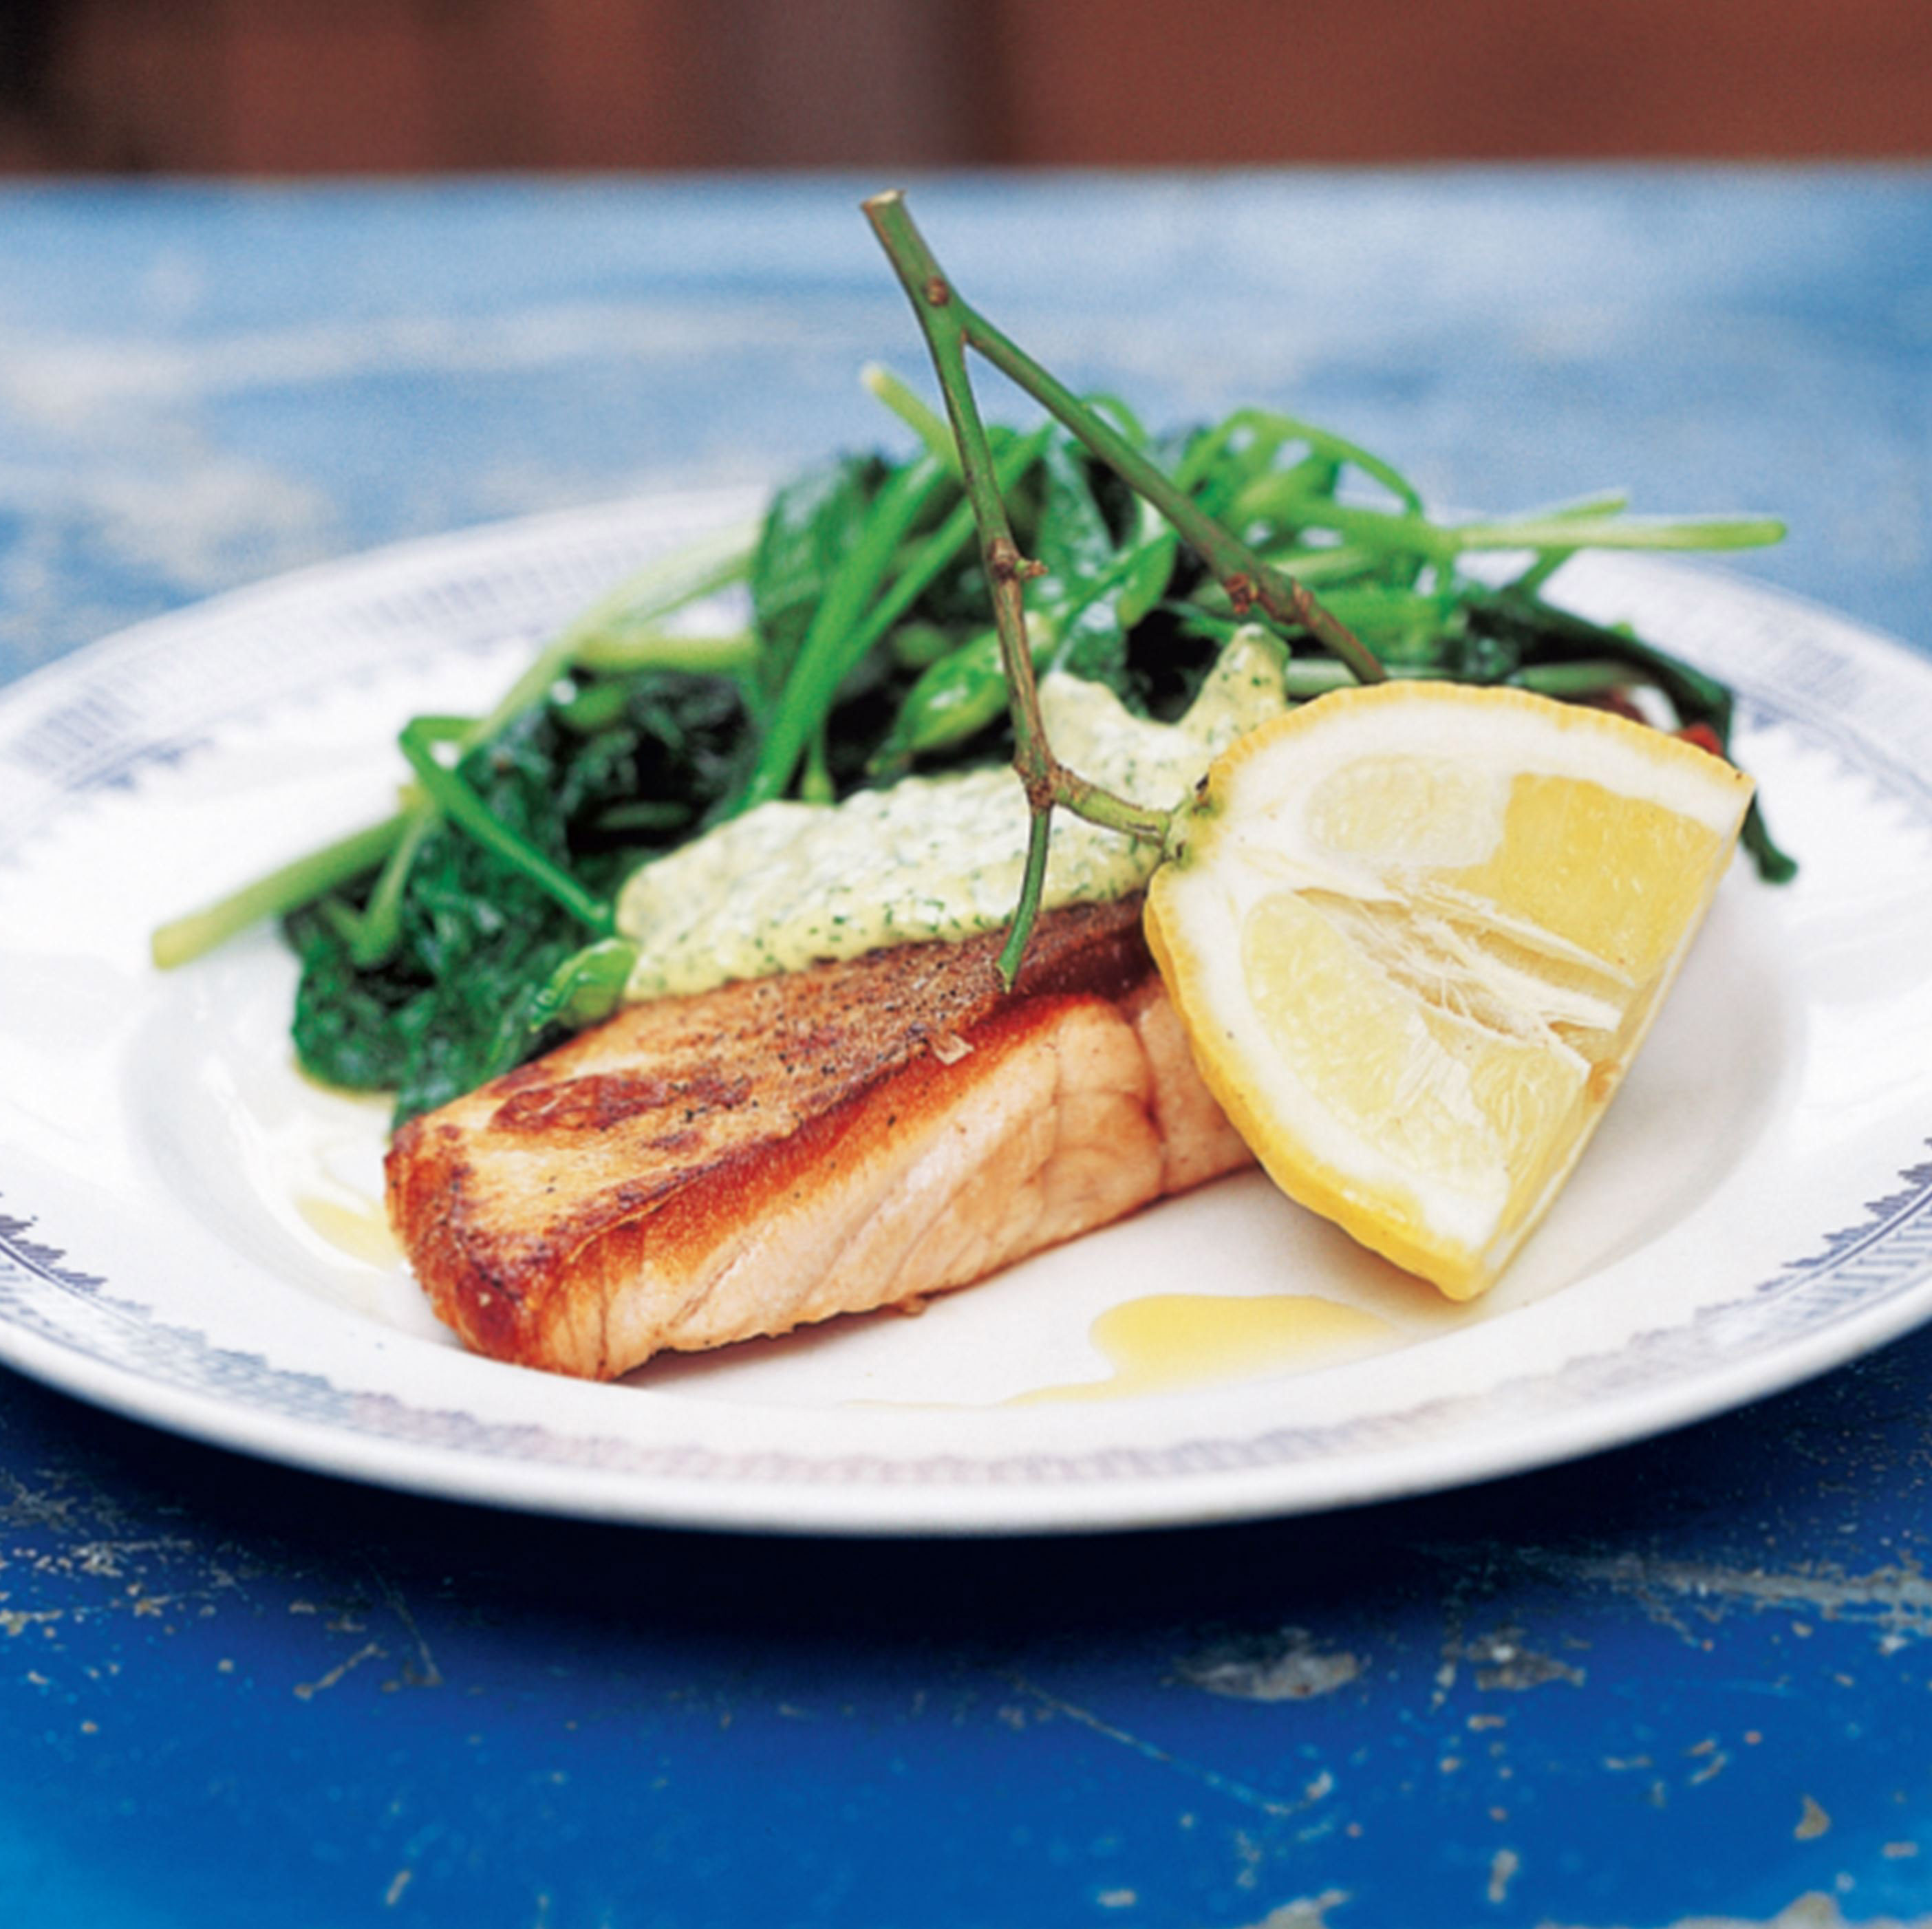 Pan-fried salmon with wild garlic